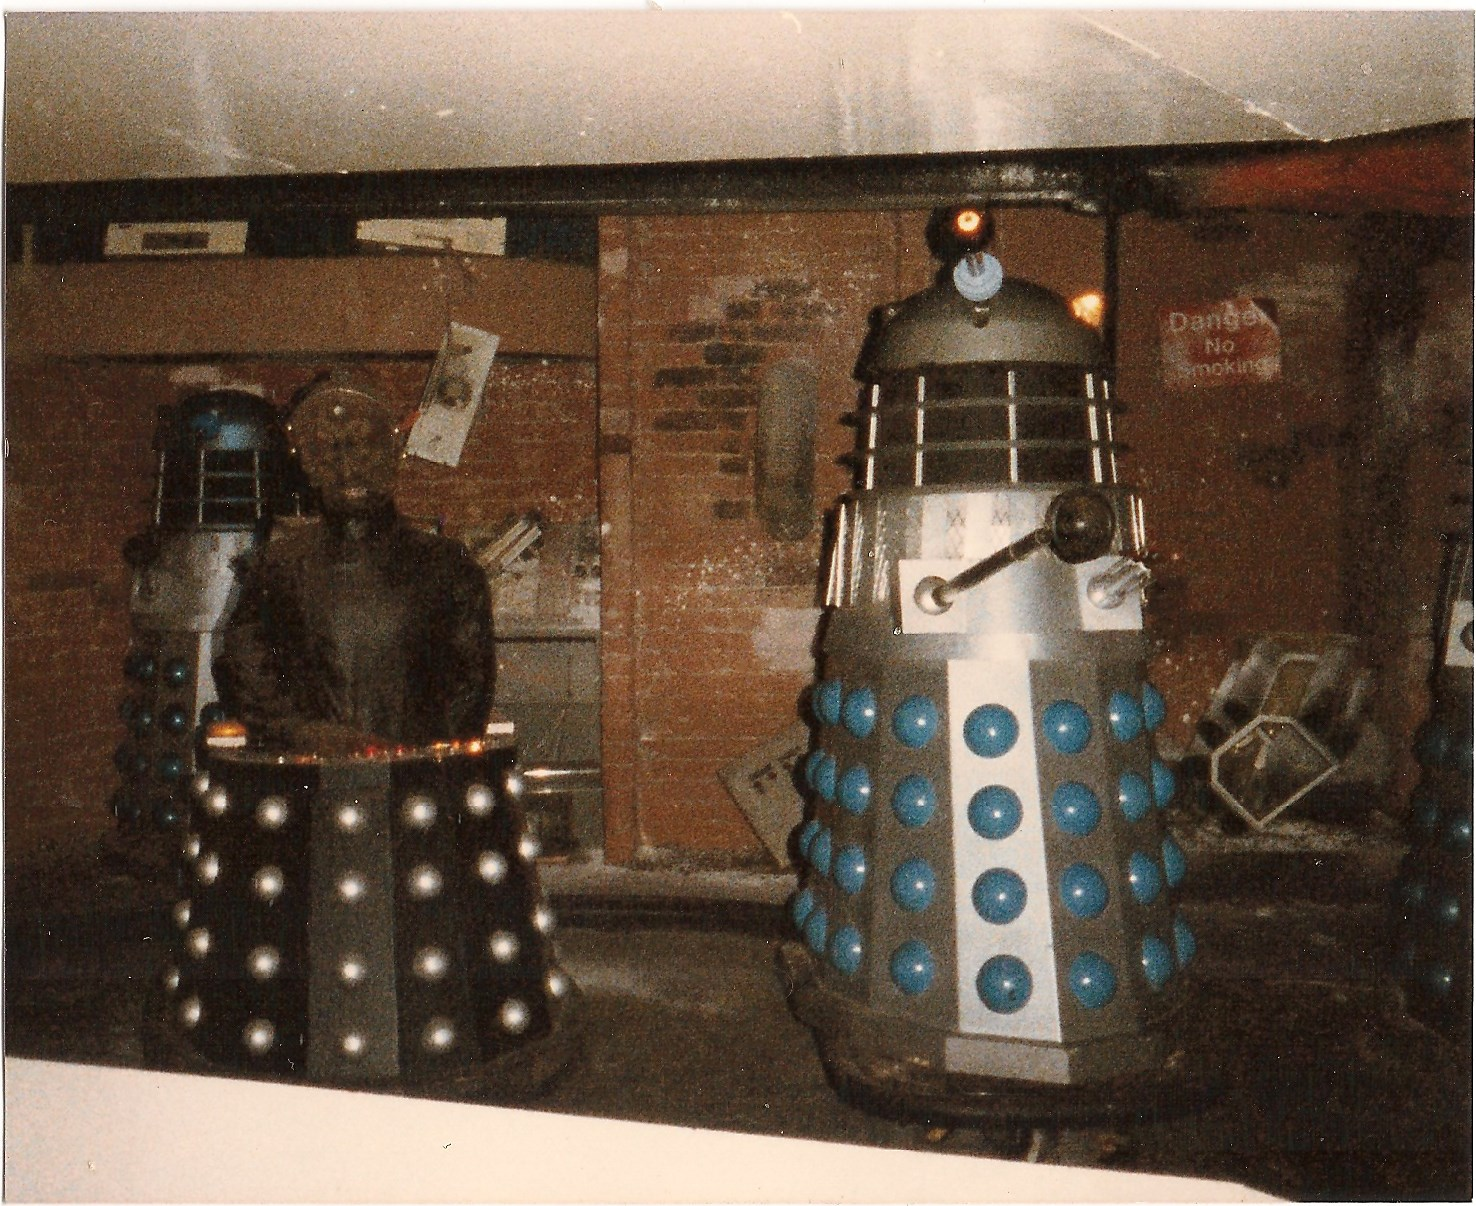 The smaller Dalek set in 1983. Picture - Alan Marshall.